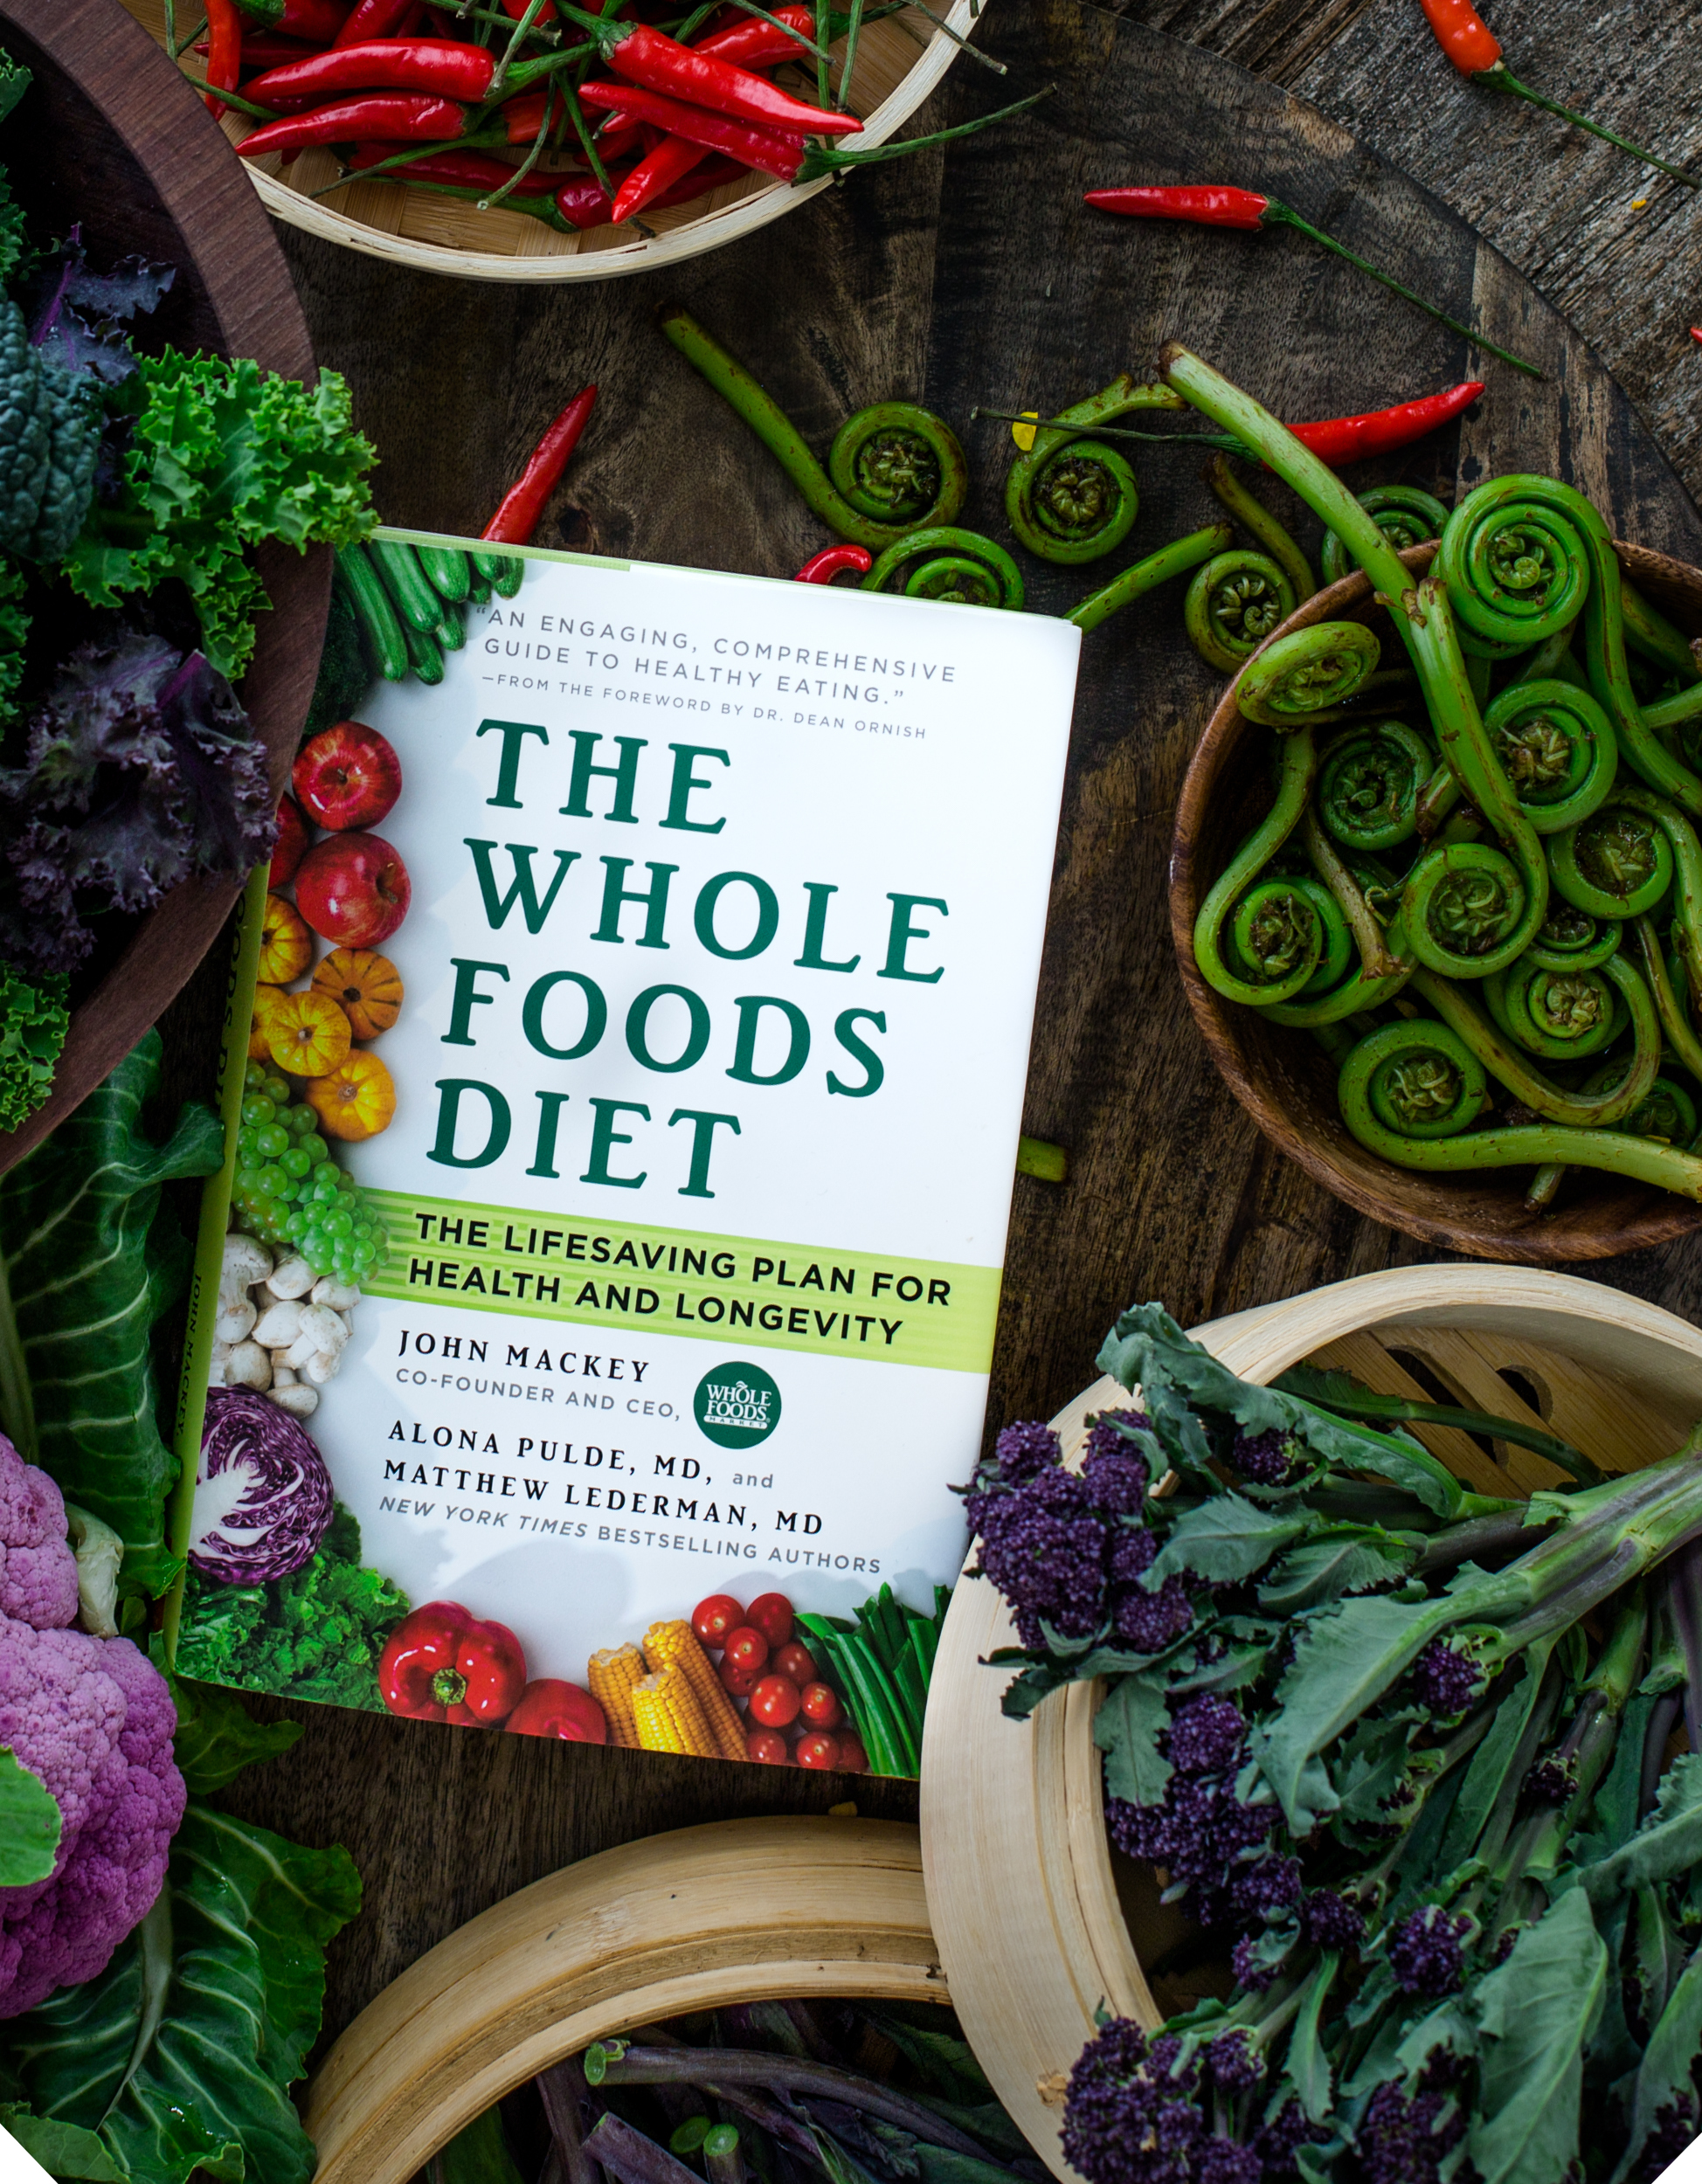 """""""The Whole Foods Diet"""" by John Mackey, Alona Pulde, MD, and Matthew Lederman, MD (Photo: Chad and Derek Sarno of Wicked Healthy)"""